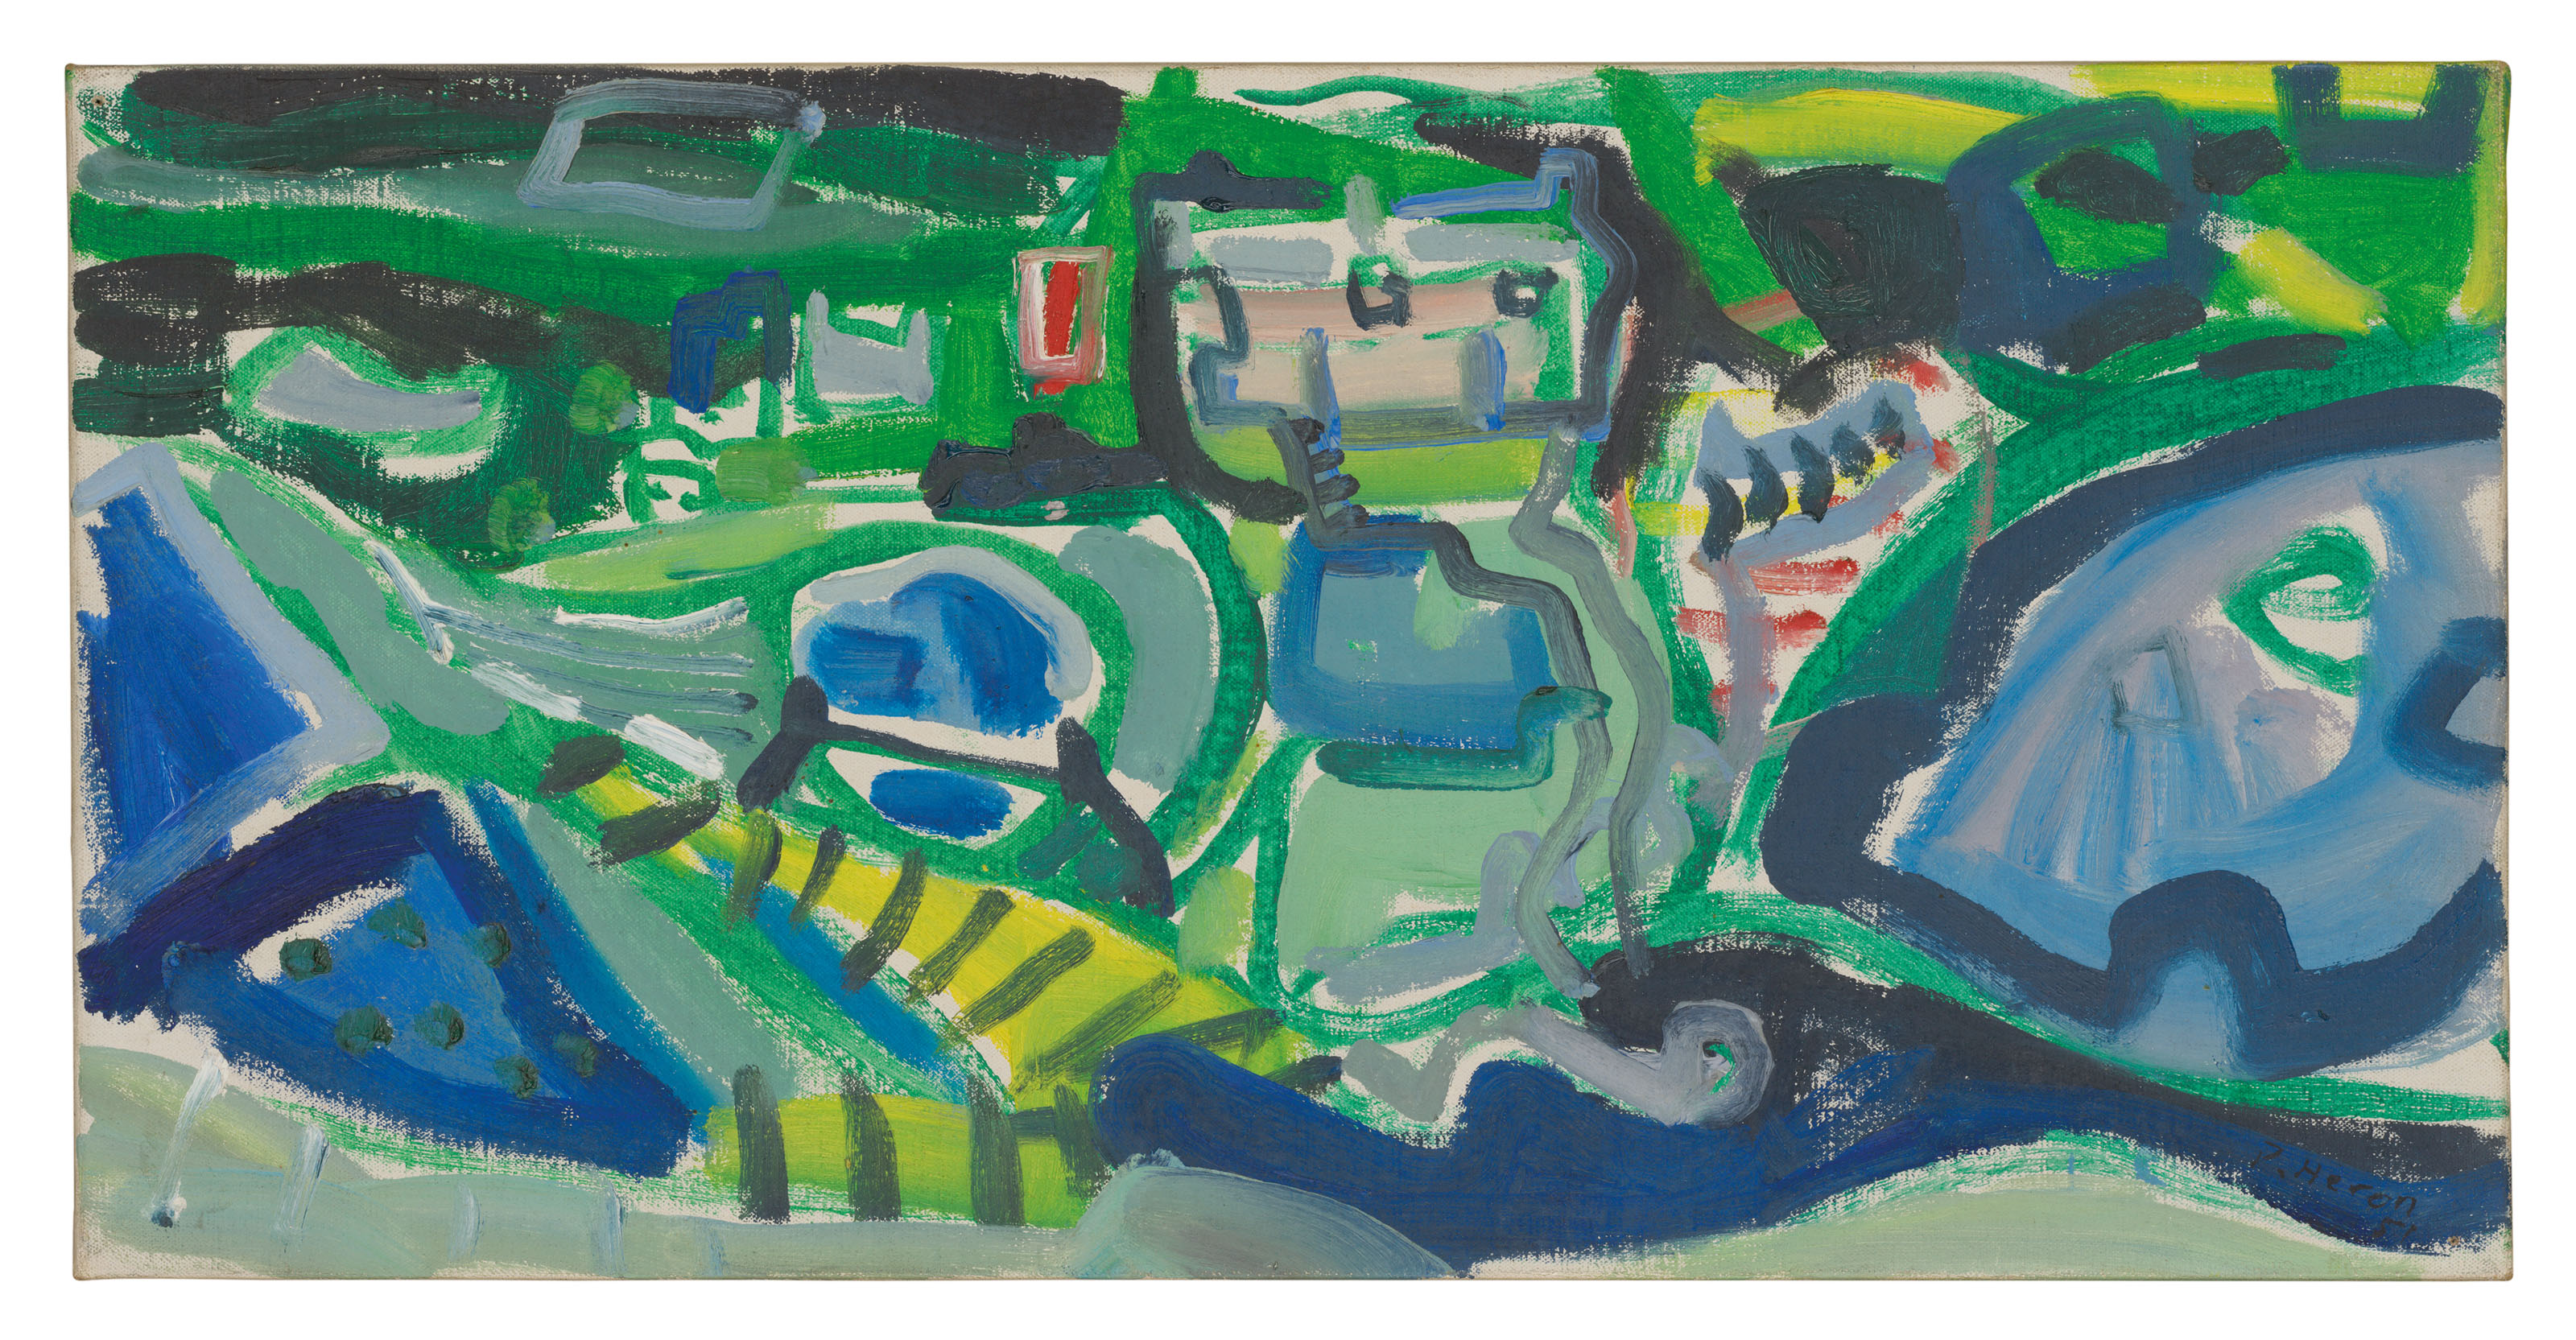 Patrick Heron (1920-1999), Valley Bottom, Porthgwarra 1951, 1951. Oil on canvas. 11 x 22 in (27.9 x 55.9 cm). Estimate £40,000-60,000. Offered inModern British Art Day Sale, 2 March at Christie's London